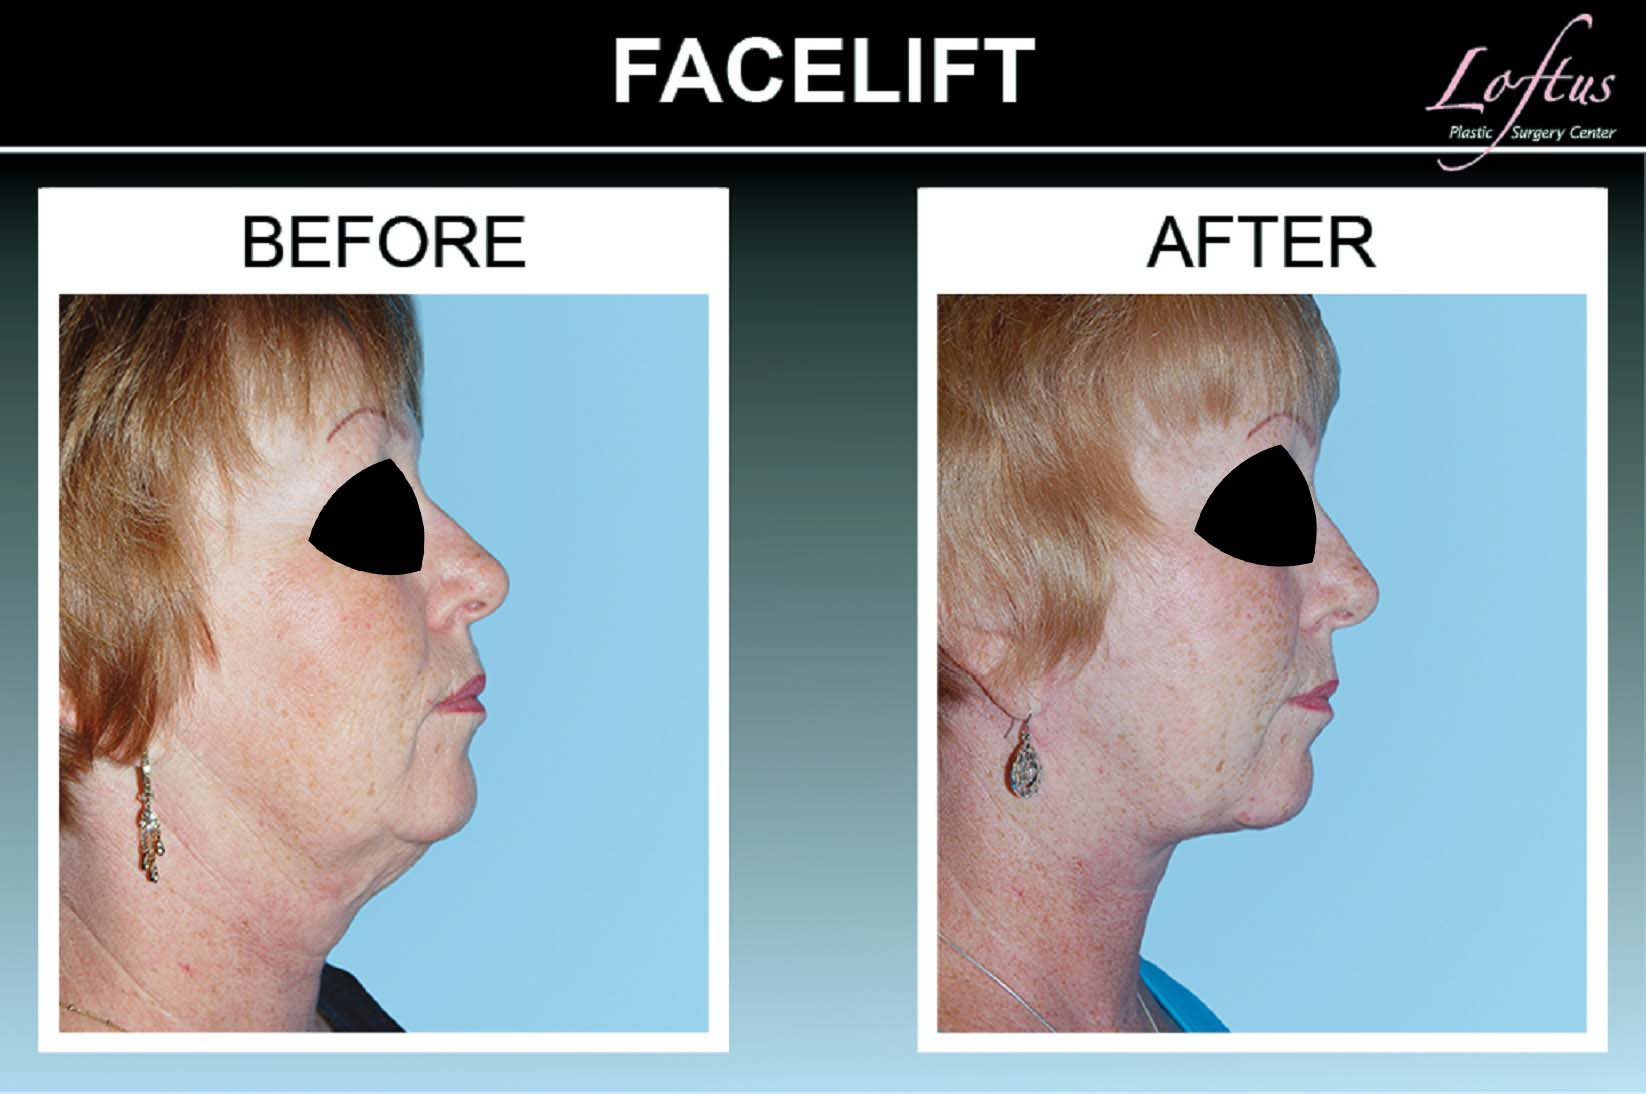 Before and after facelift photos Face Lift Before And After Photos - Dr Daniel Lanzer